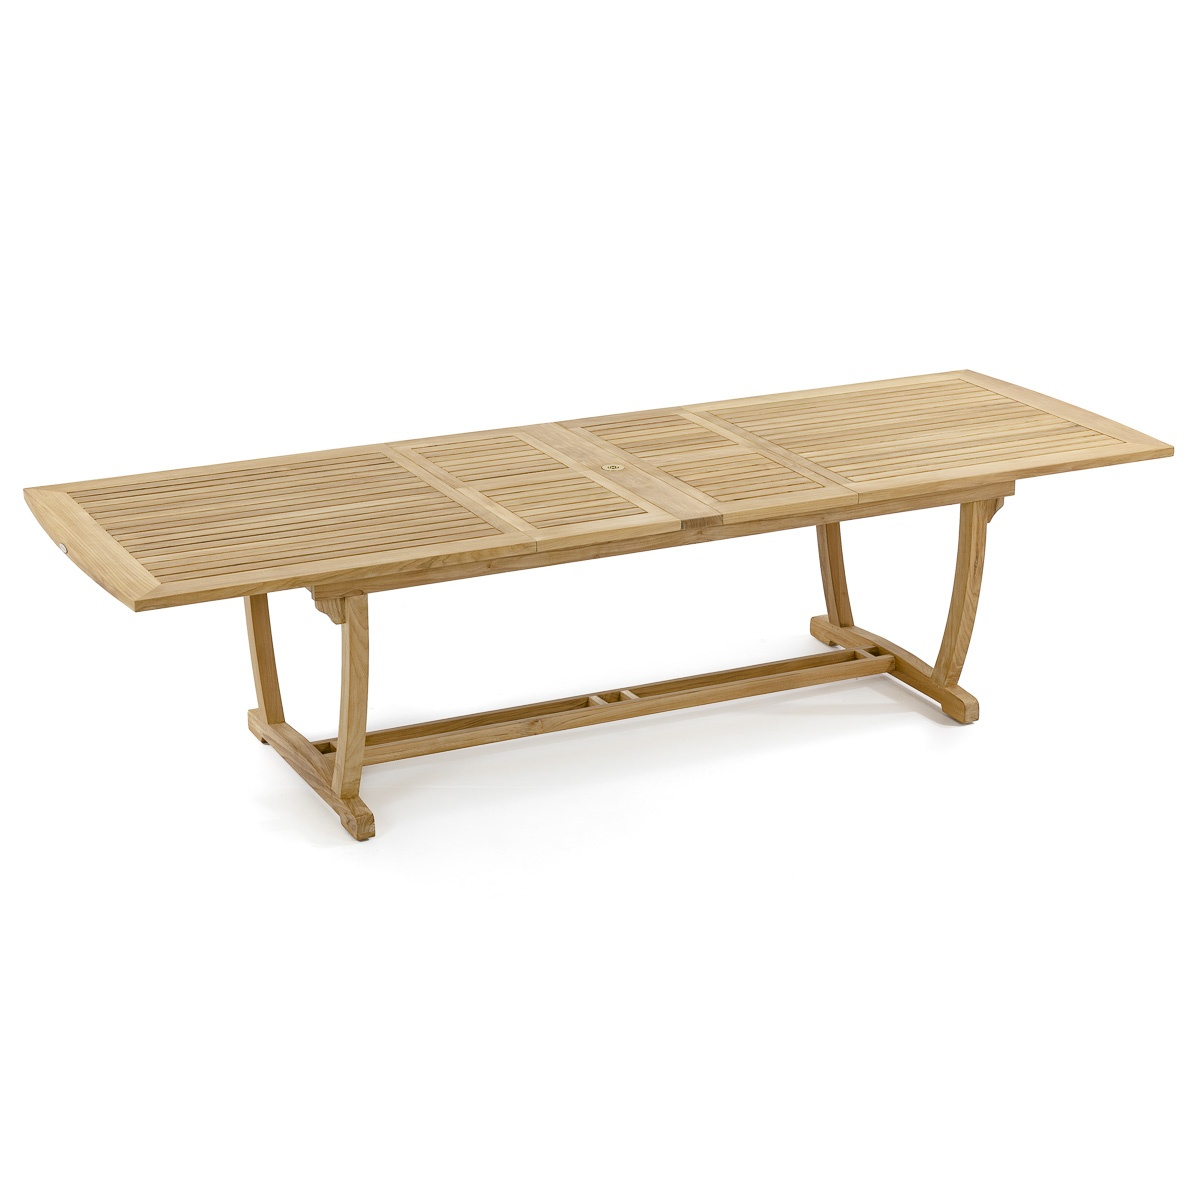 Teak Extension Table Bench Picnic Set Westminster Teak - Teak table with benches